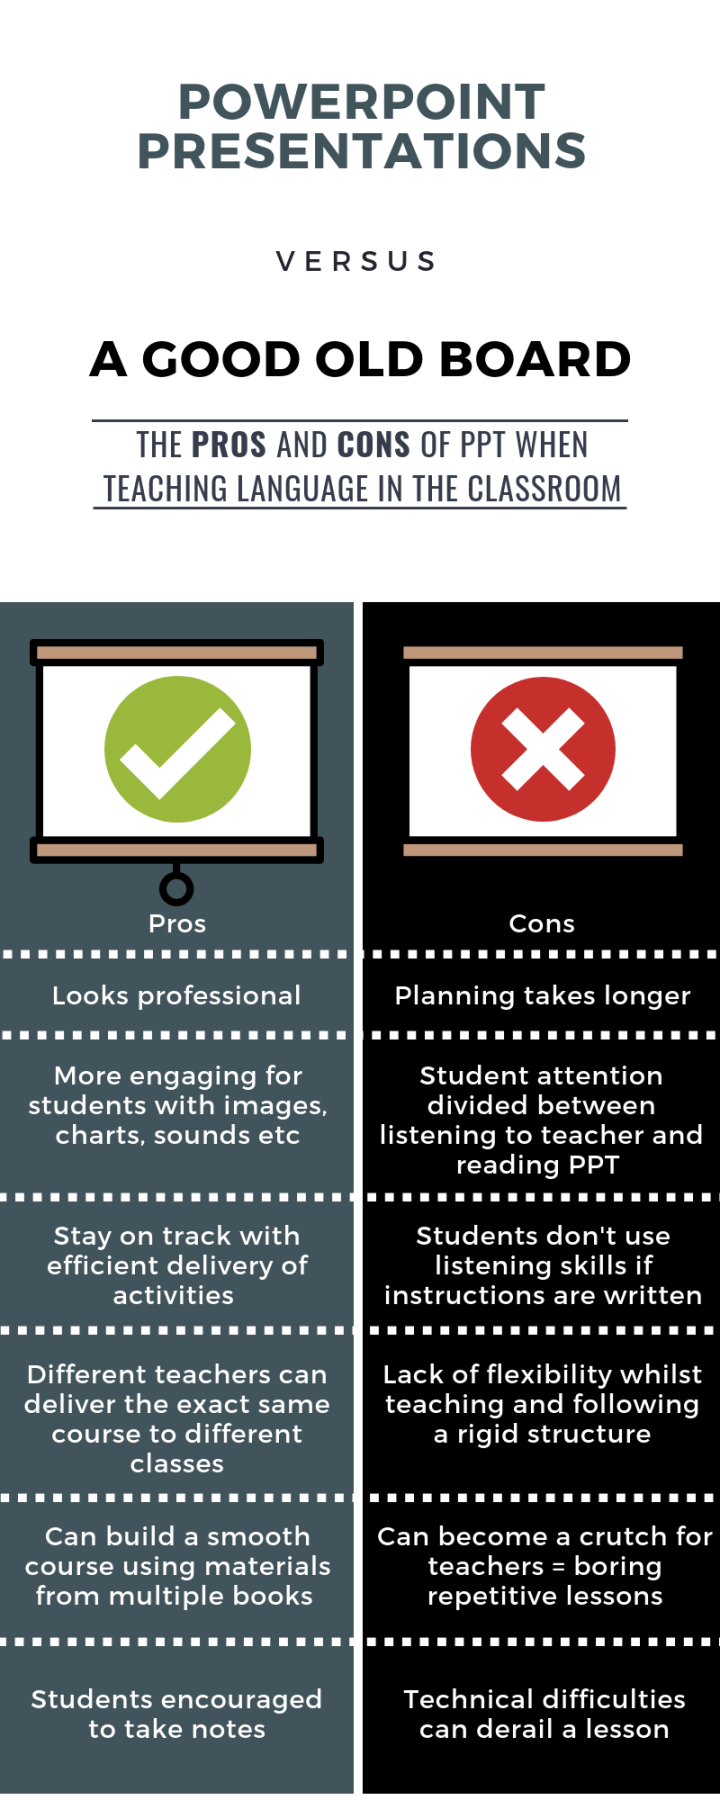 PPT pros and cons on the classroom